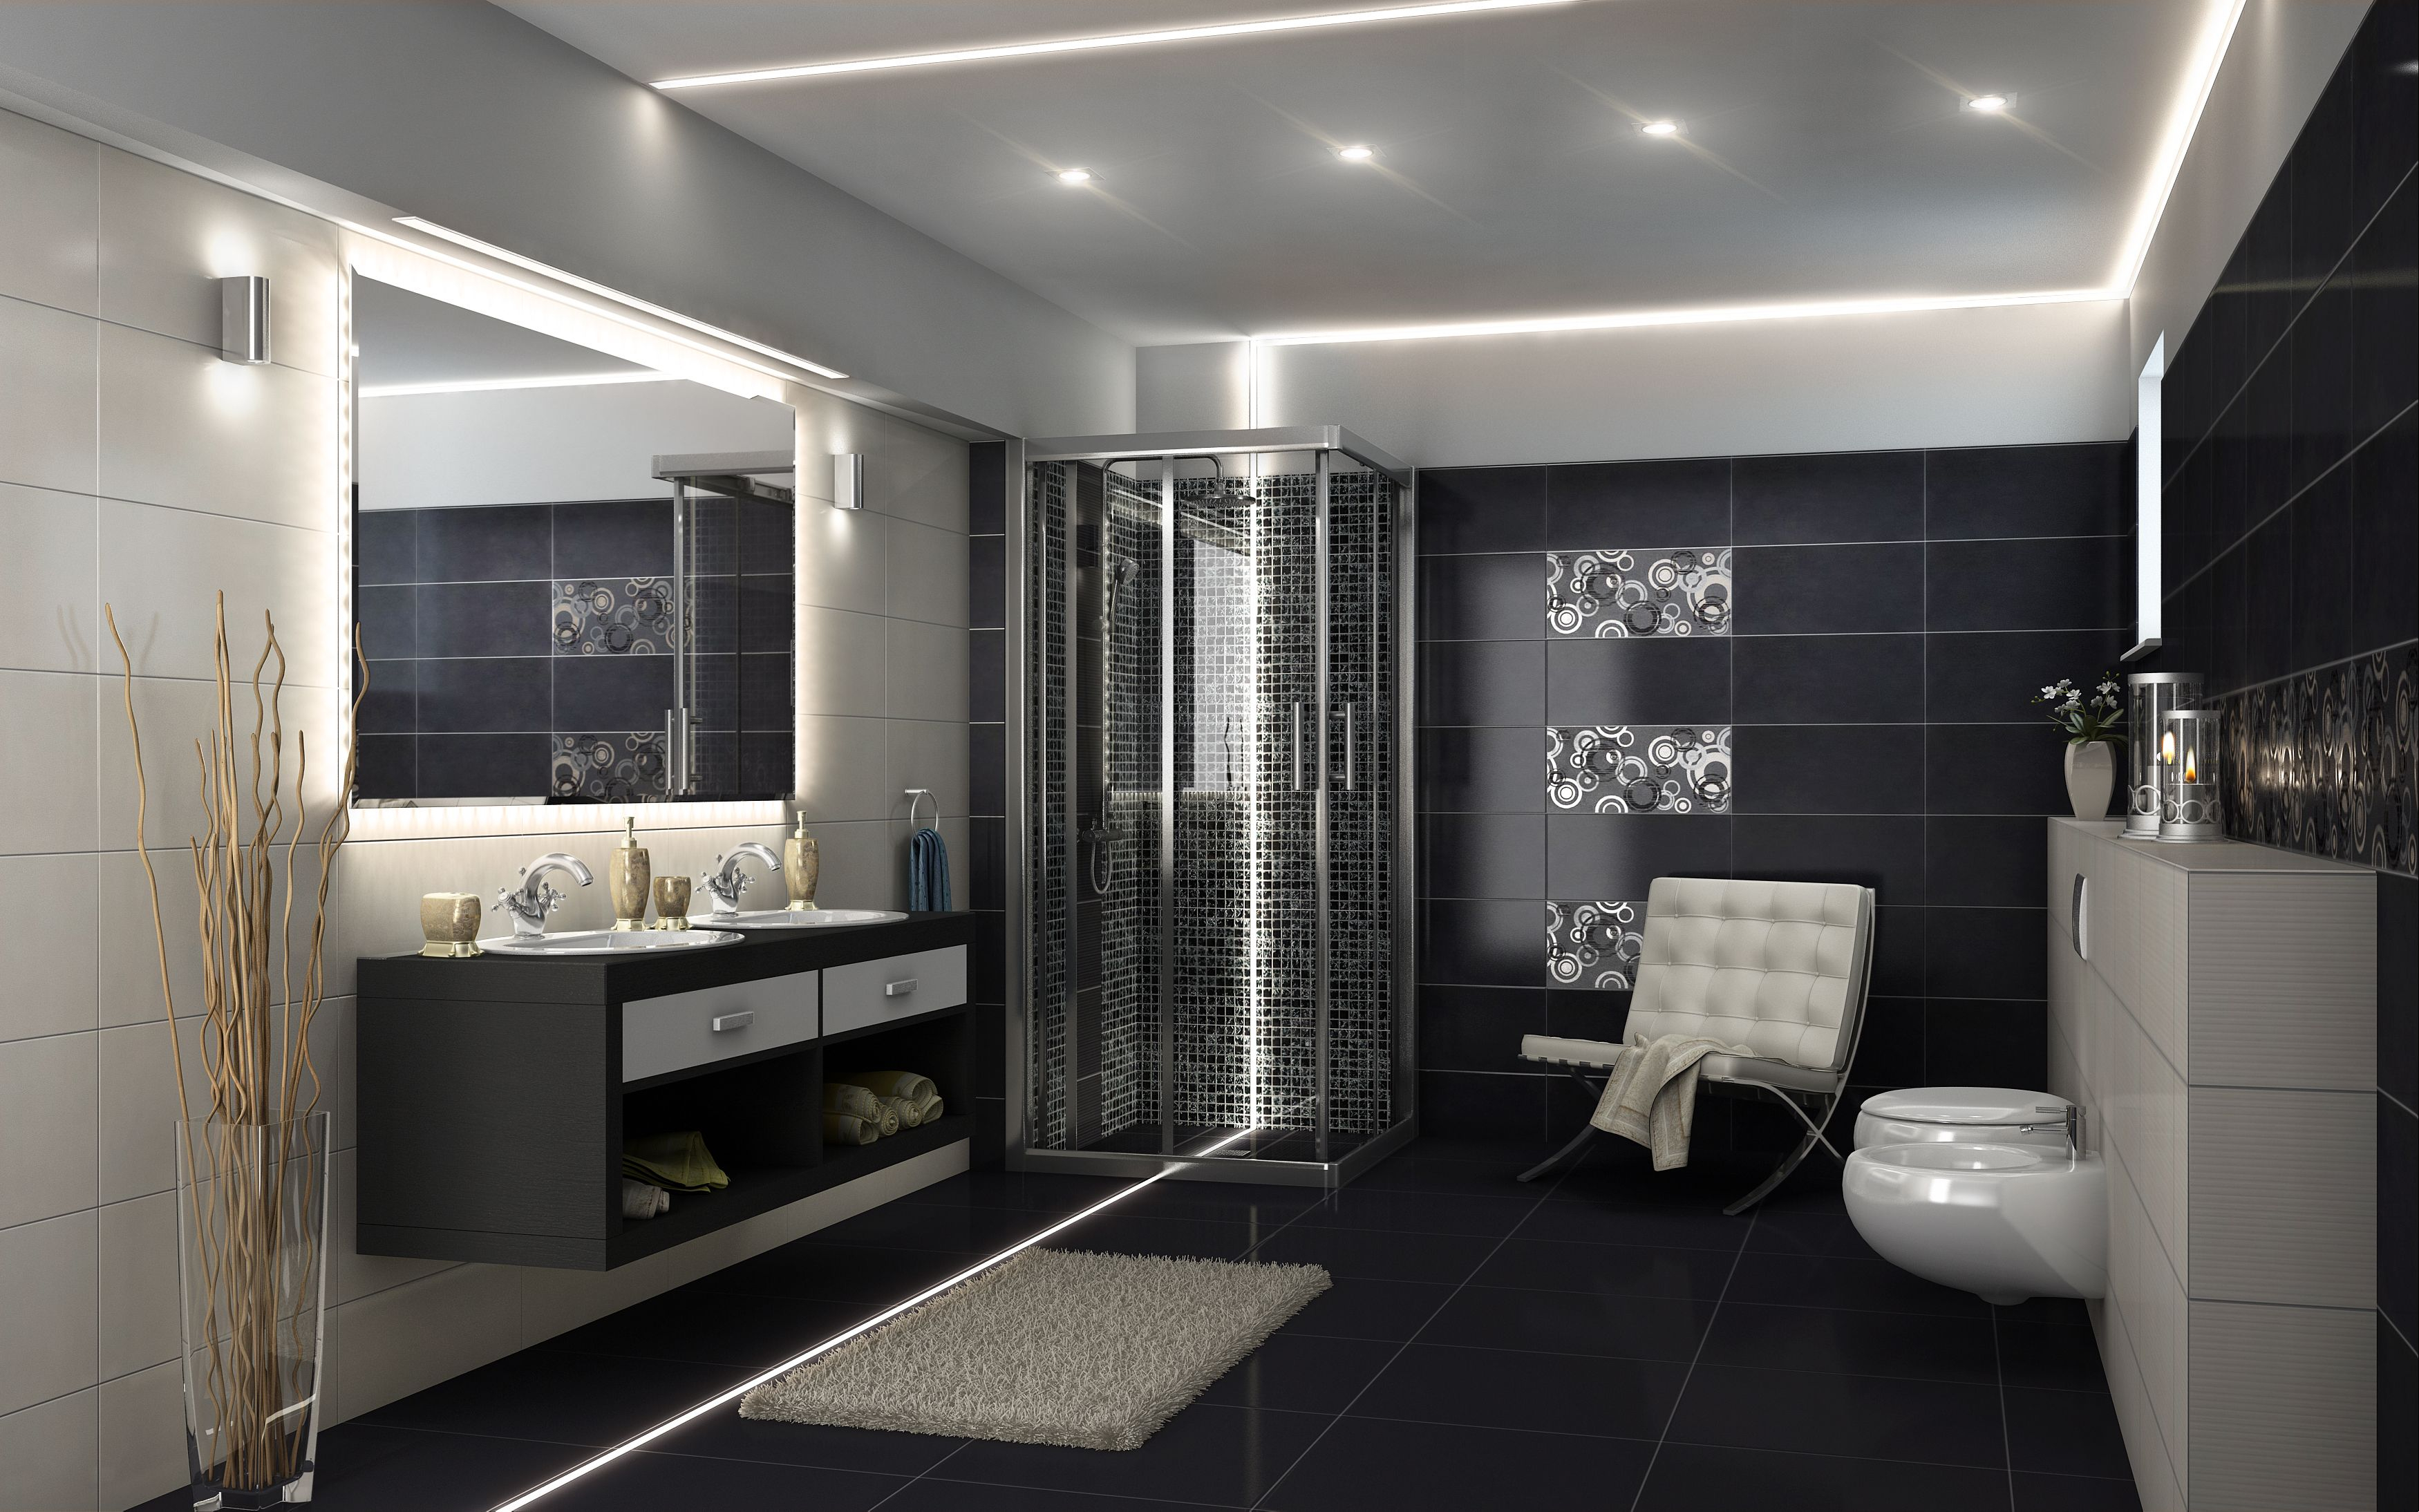 Led Lighting For Bathroom Ceiling And Floor Lights within sizing 3500 X 2188